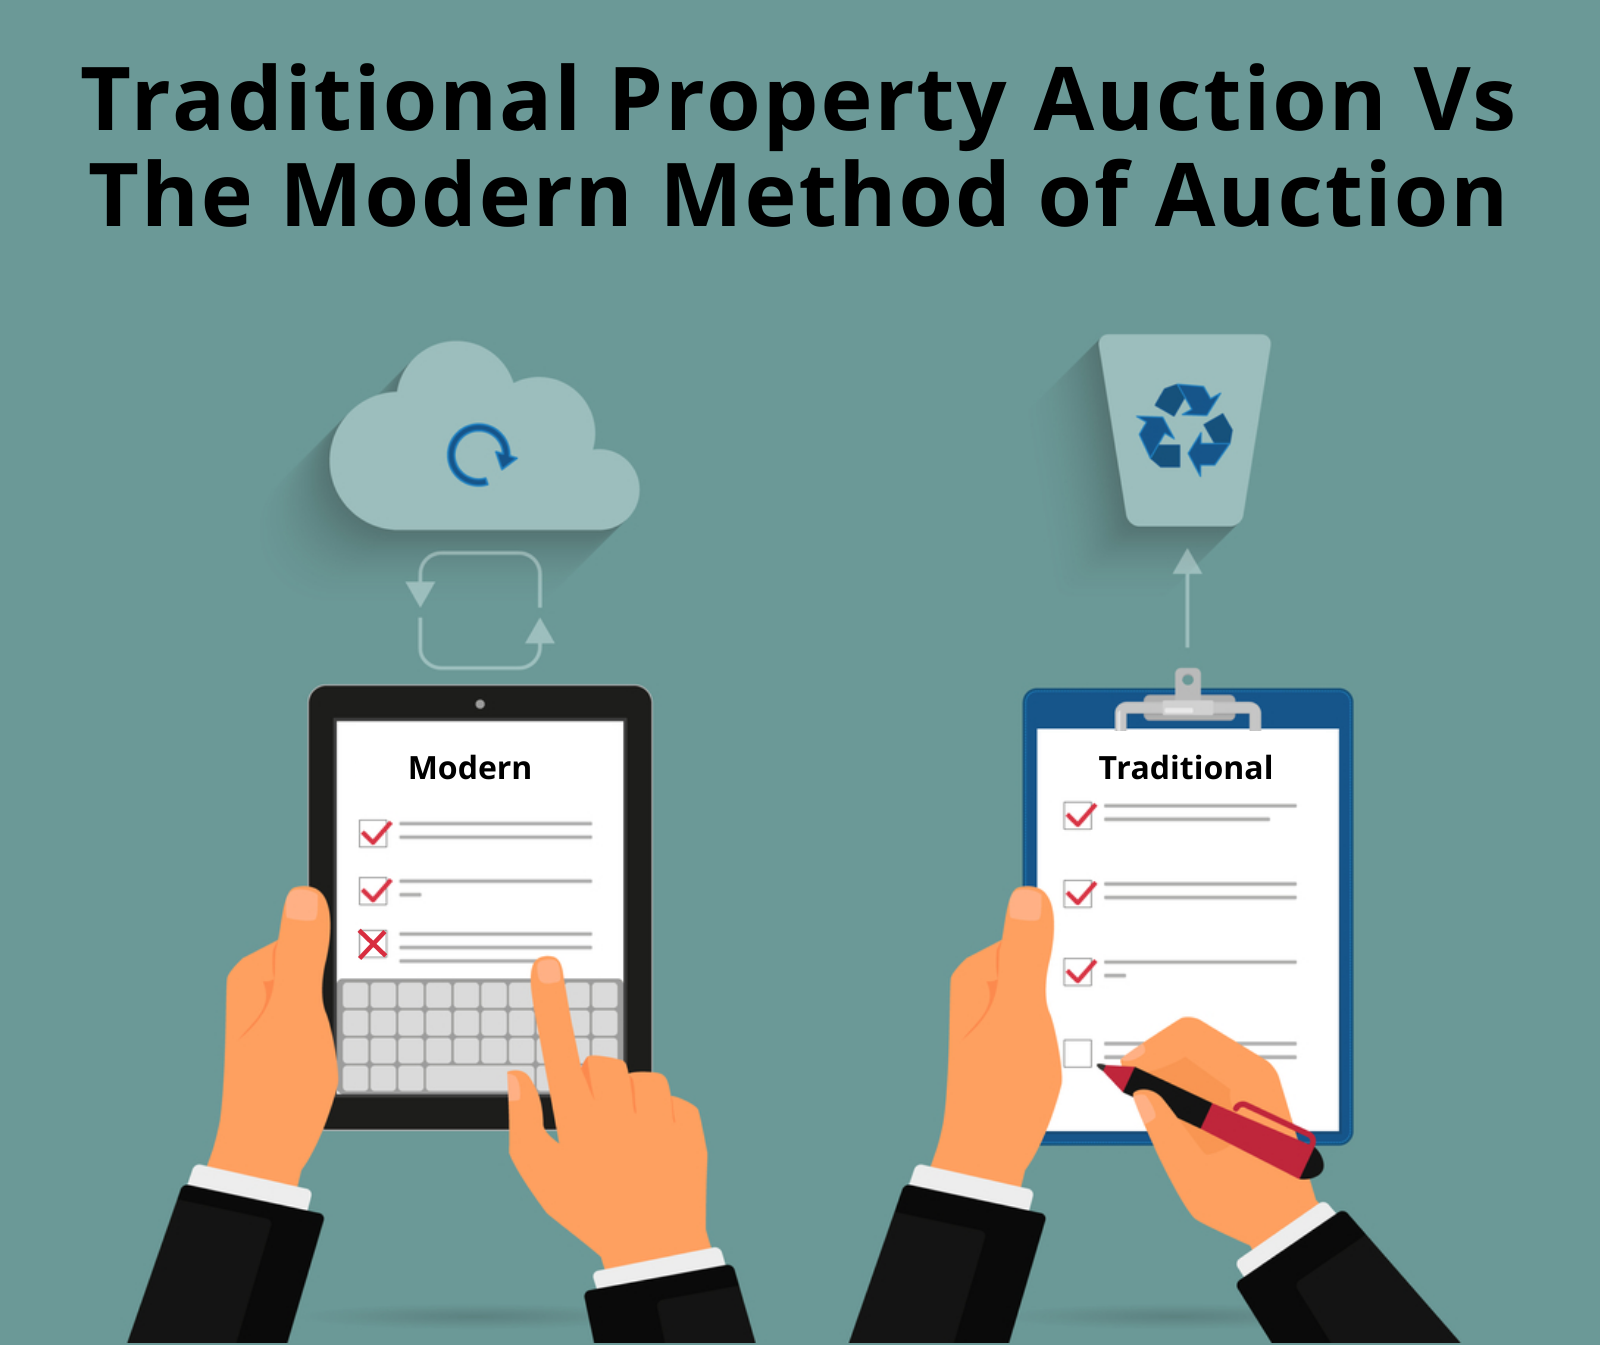 The traditional property auction vs modern method of auction